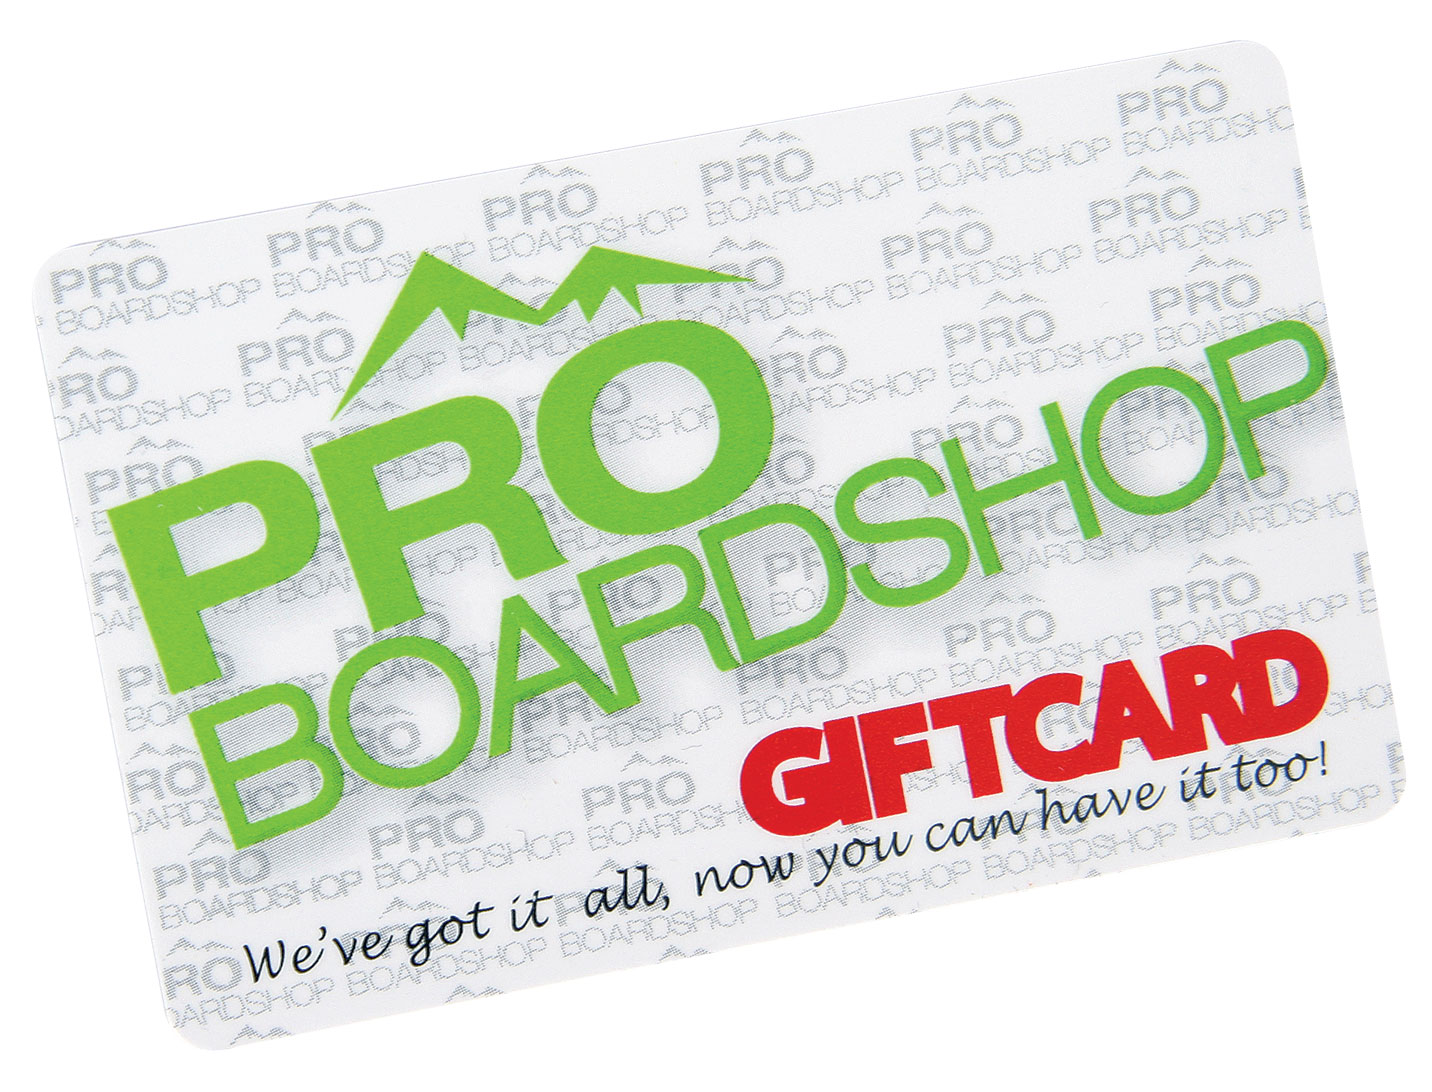 Let them choose! Whether you're having trouble picking the right gift, or you just want to make sure they get the perfect gear, a Proboardshop gift card is sure to please. No more worries about the right color, size, or current style. You'll get 5 stars for gift giving, and they'll get exactly what they want. Note:Currently, Proboardshop gift cards are only redeemable through phone sale. The lucky receiver should call 1-888-557-0551 to place their order and redeem their gift card. - $25.00